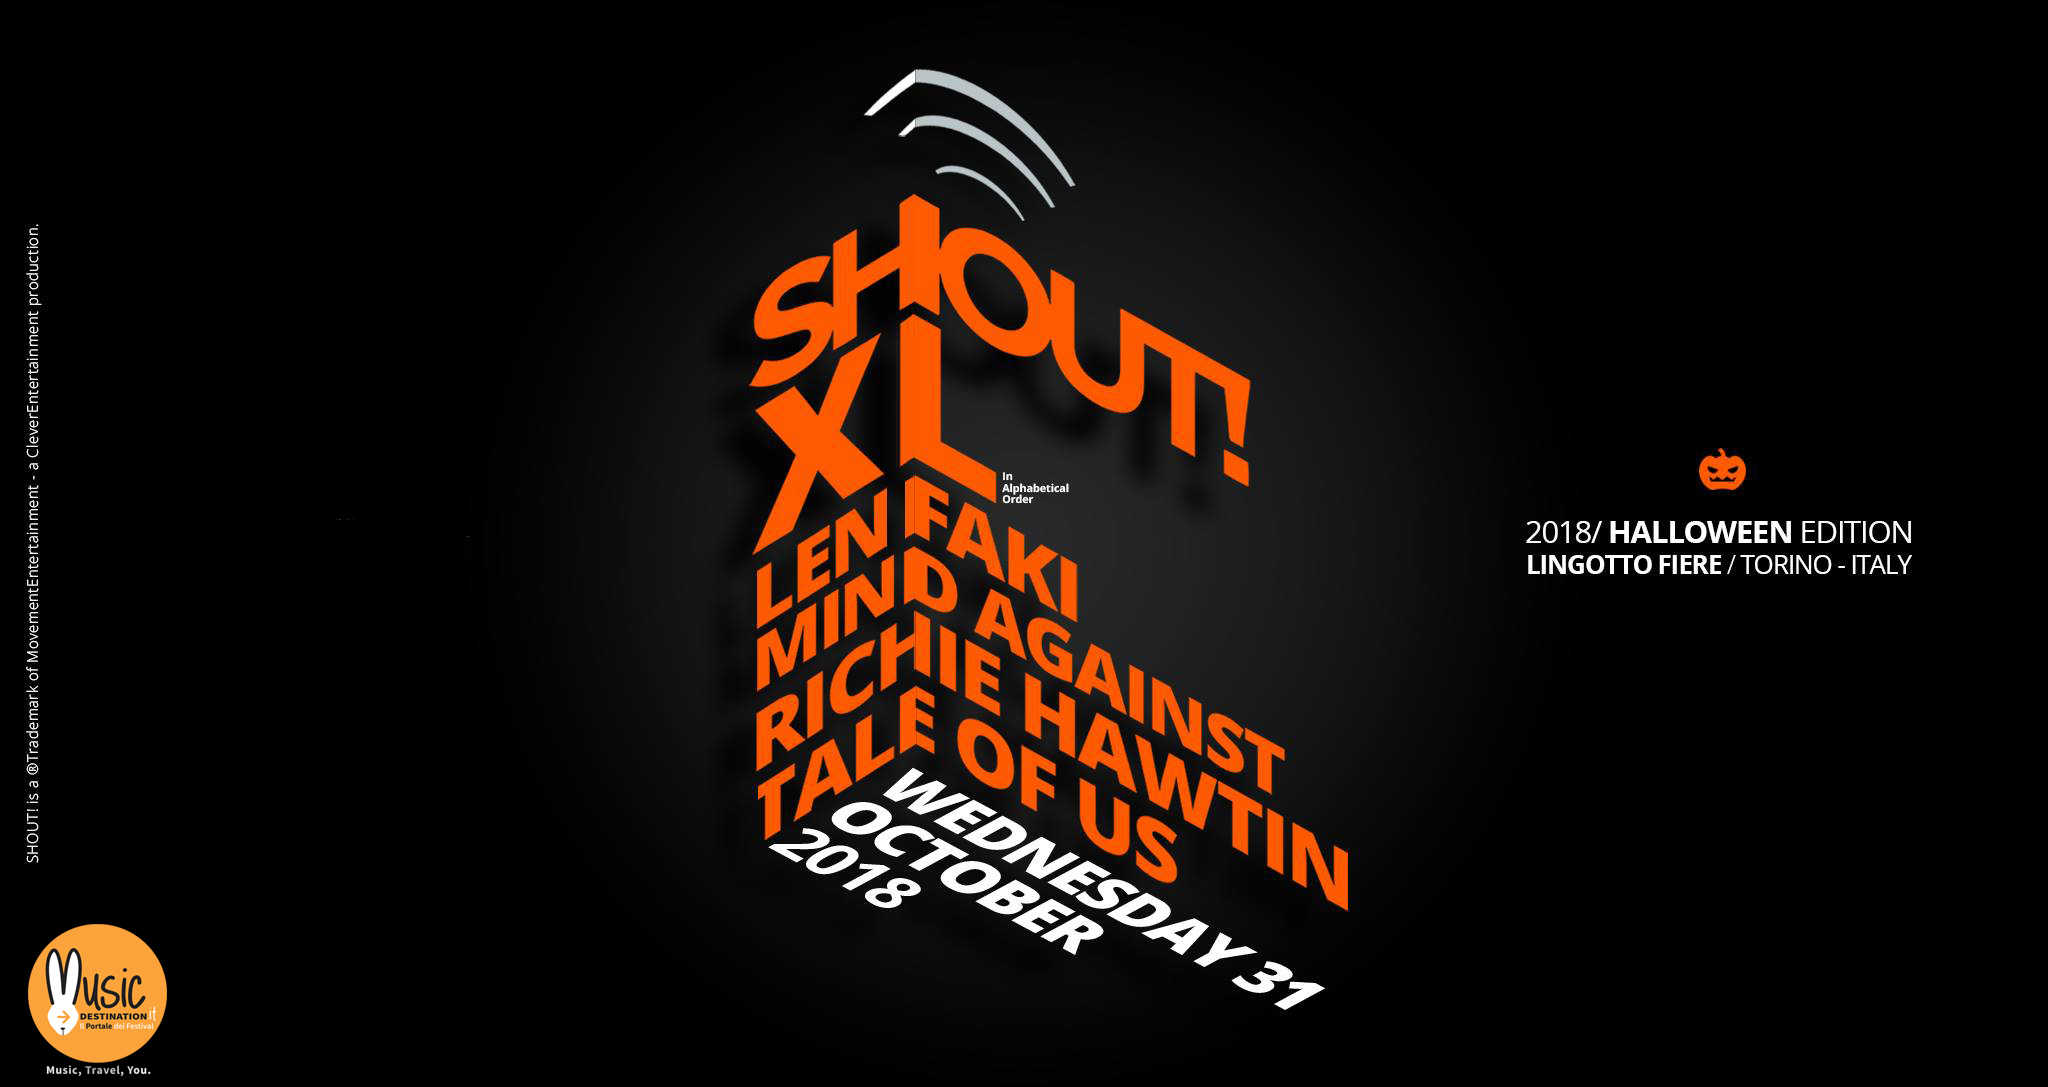 shout xl len faki richie hawtin tale of us halloween 2018